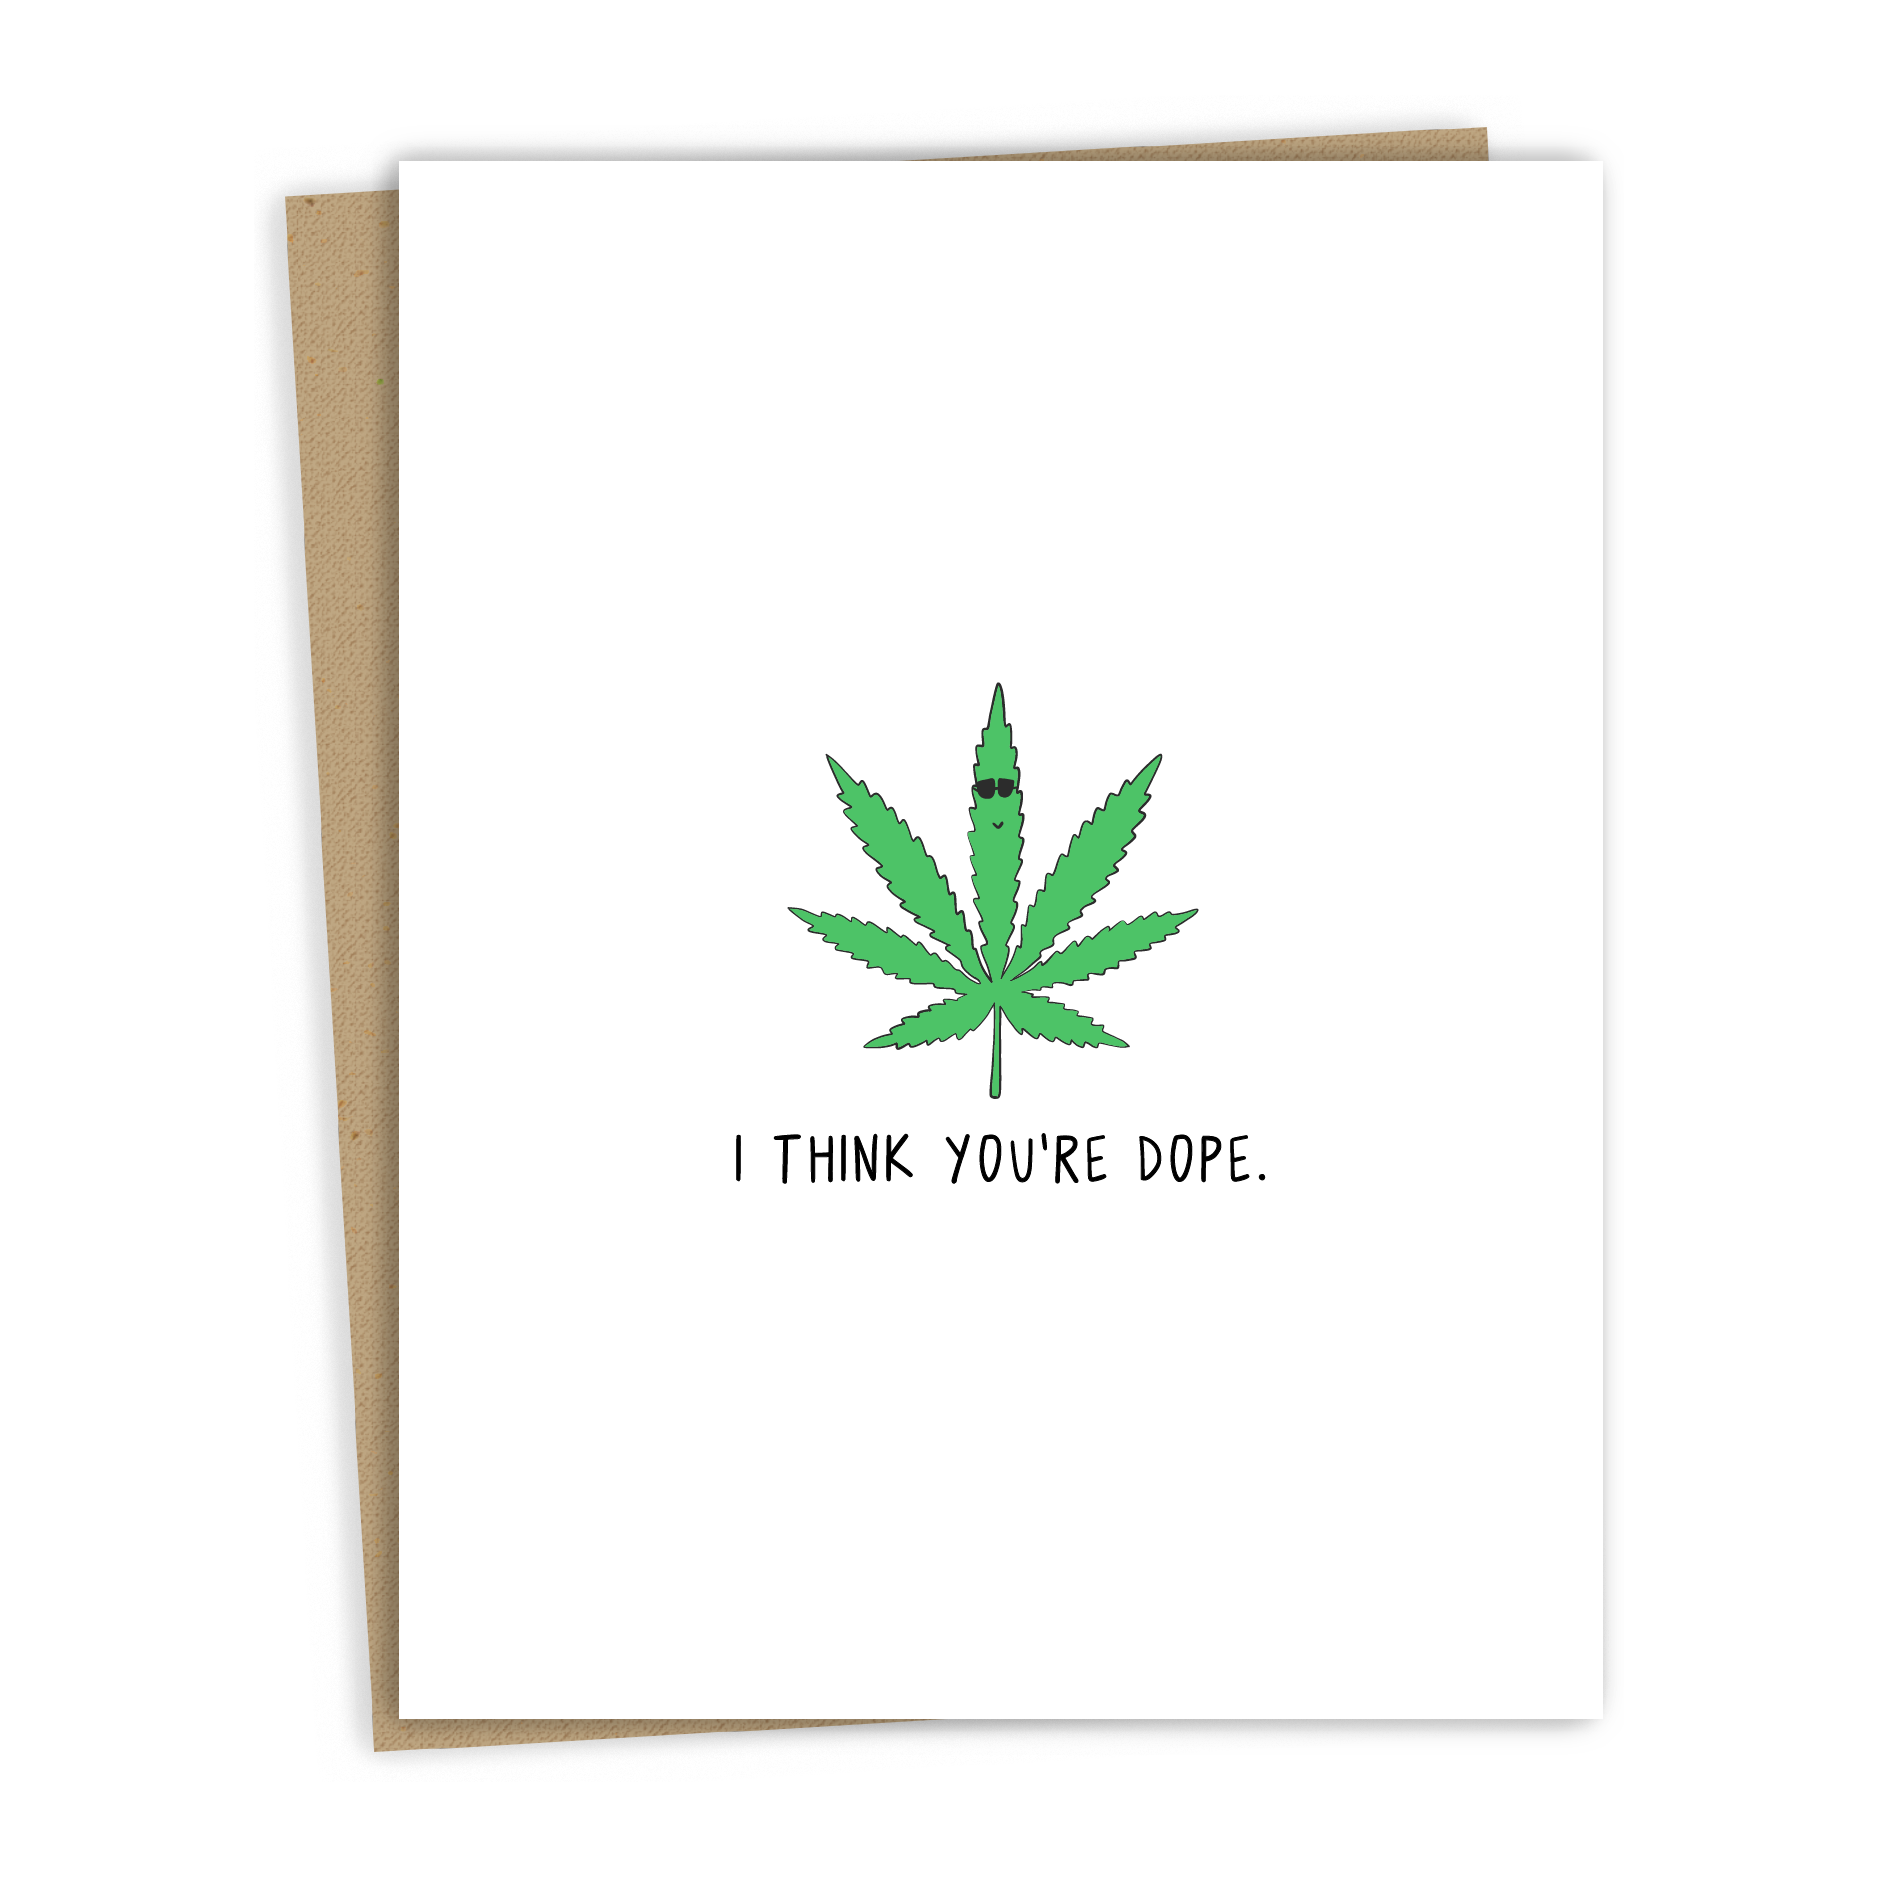 You're Dope Card